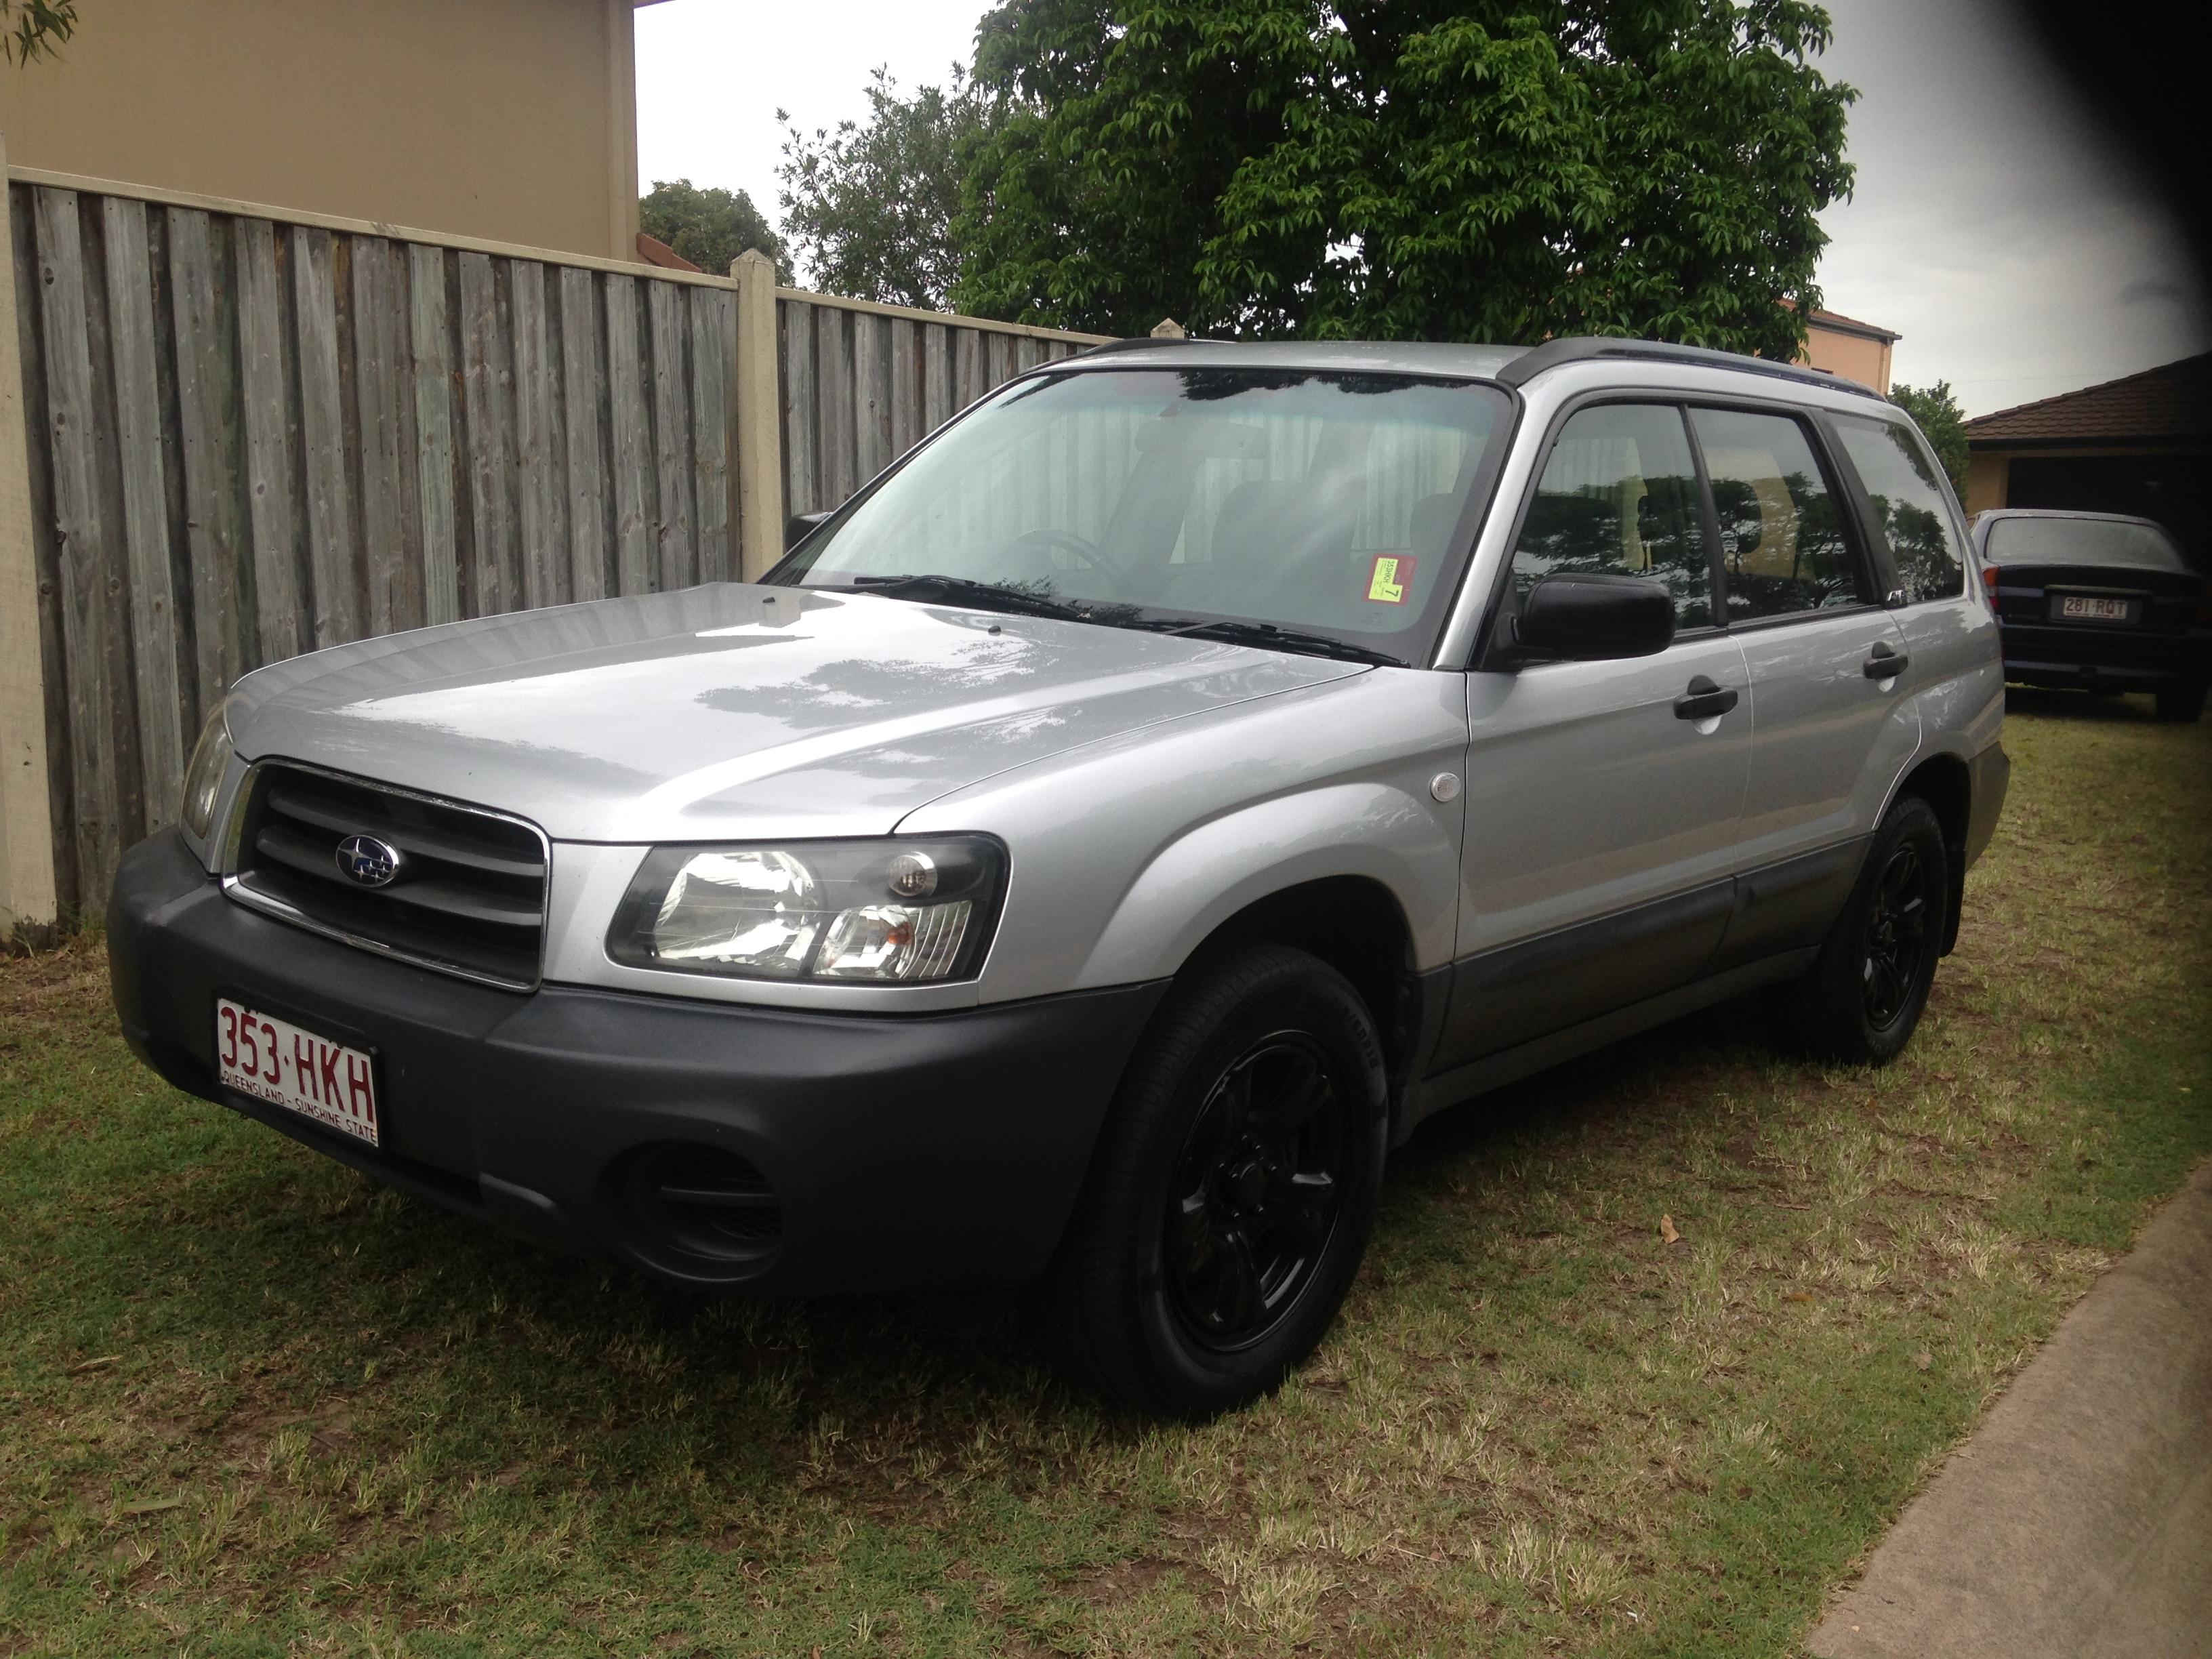 2004 subaru forester car sales qld gold coast. Black Bedroom Furniture Sets. Home Design Ideas